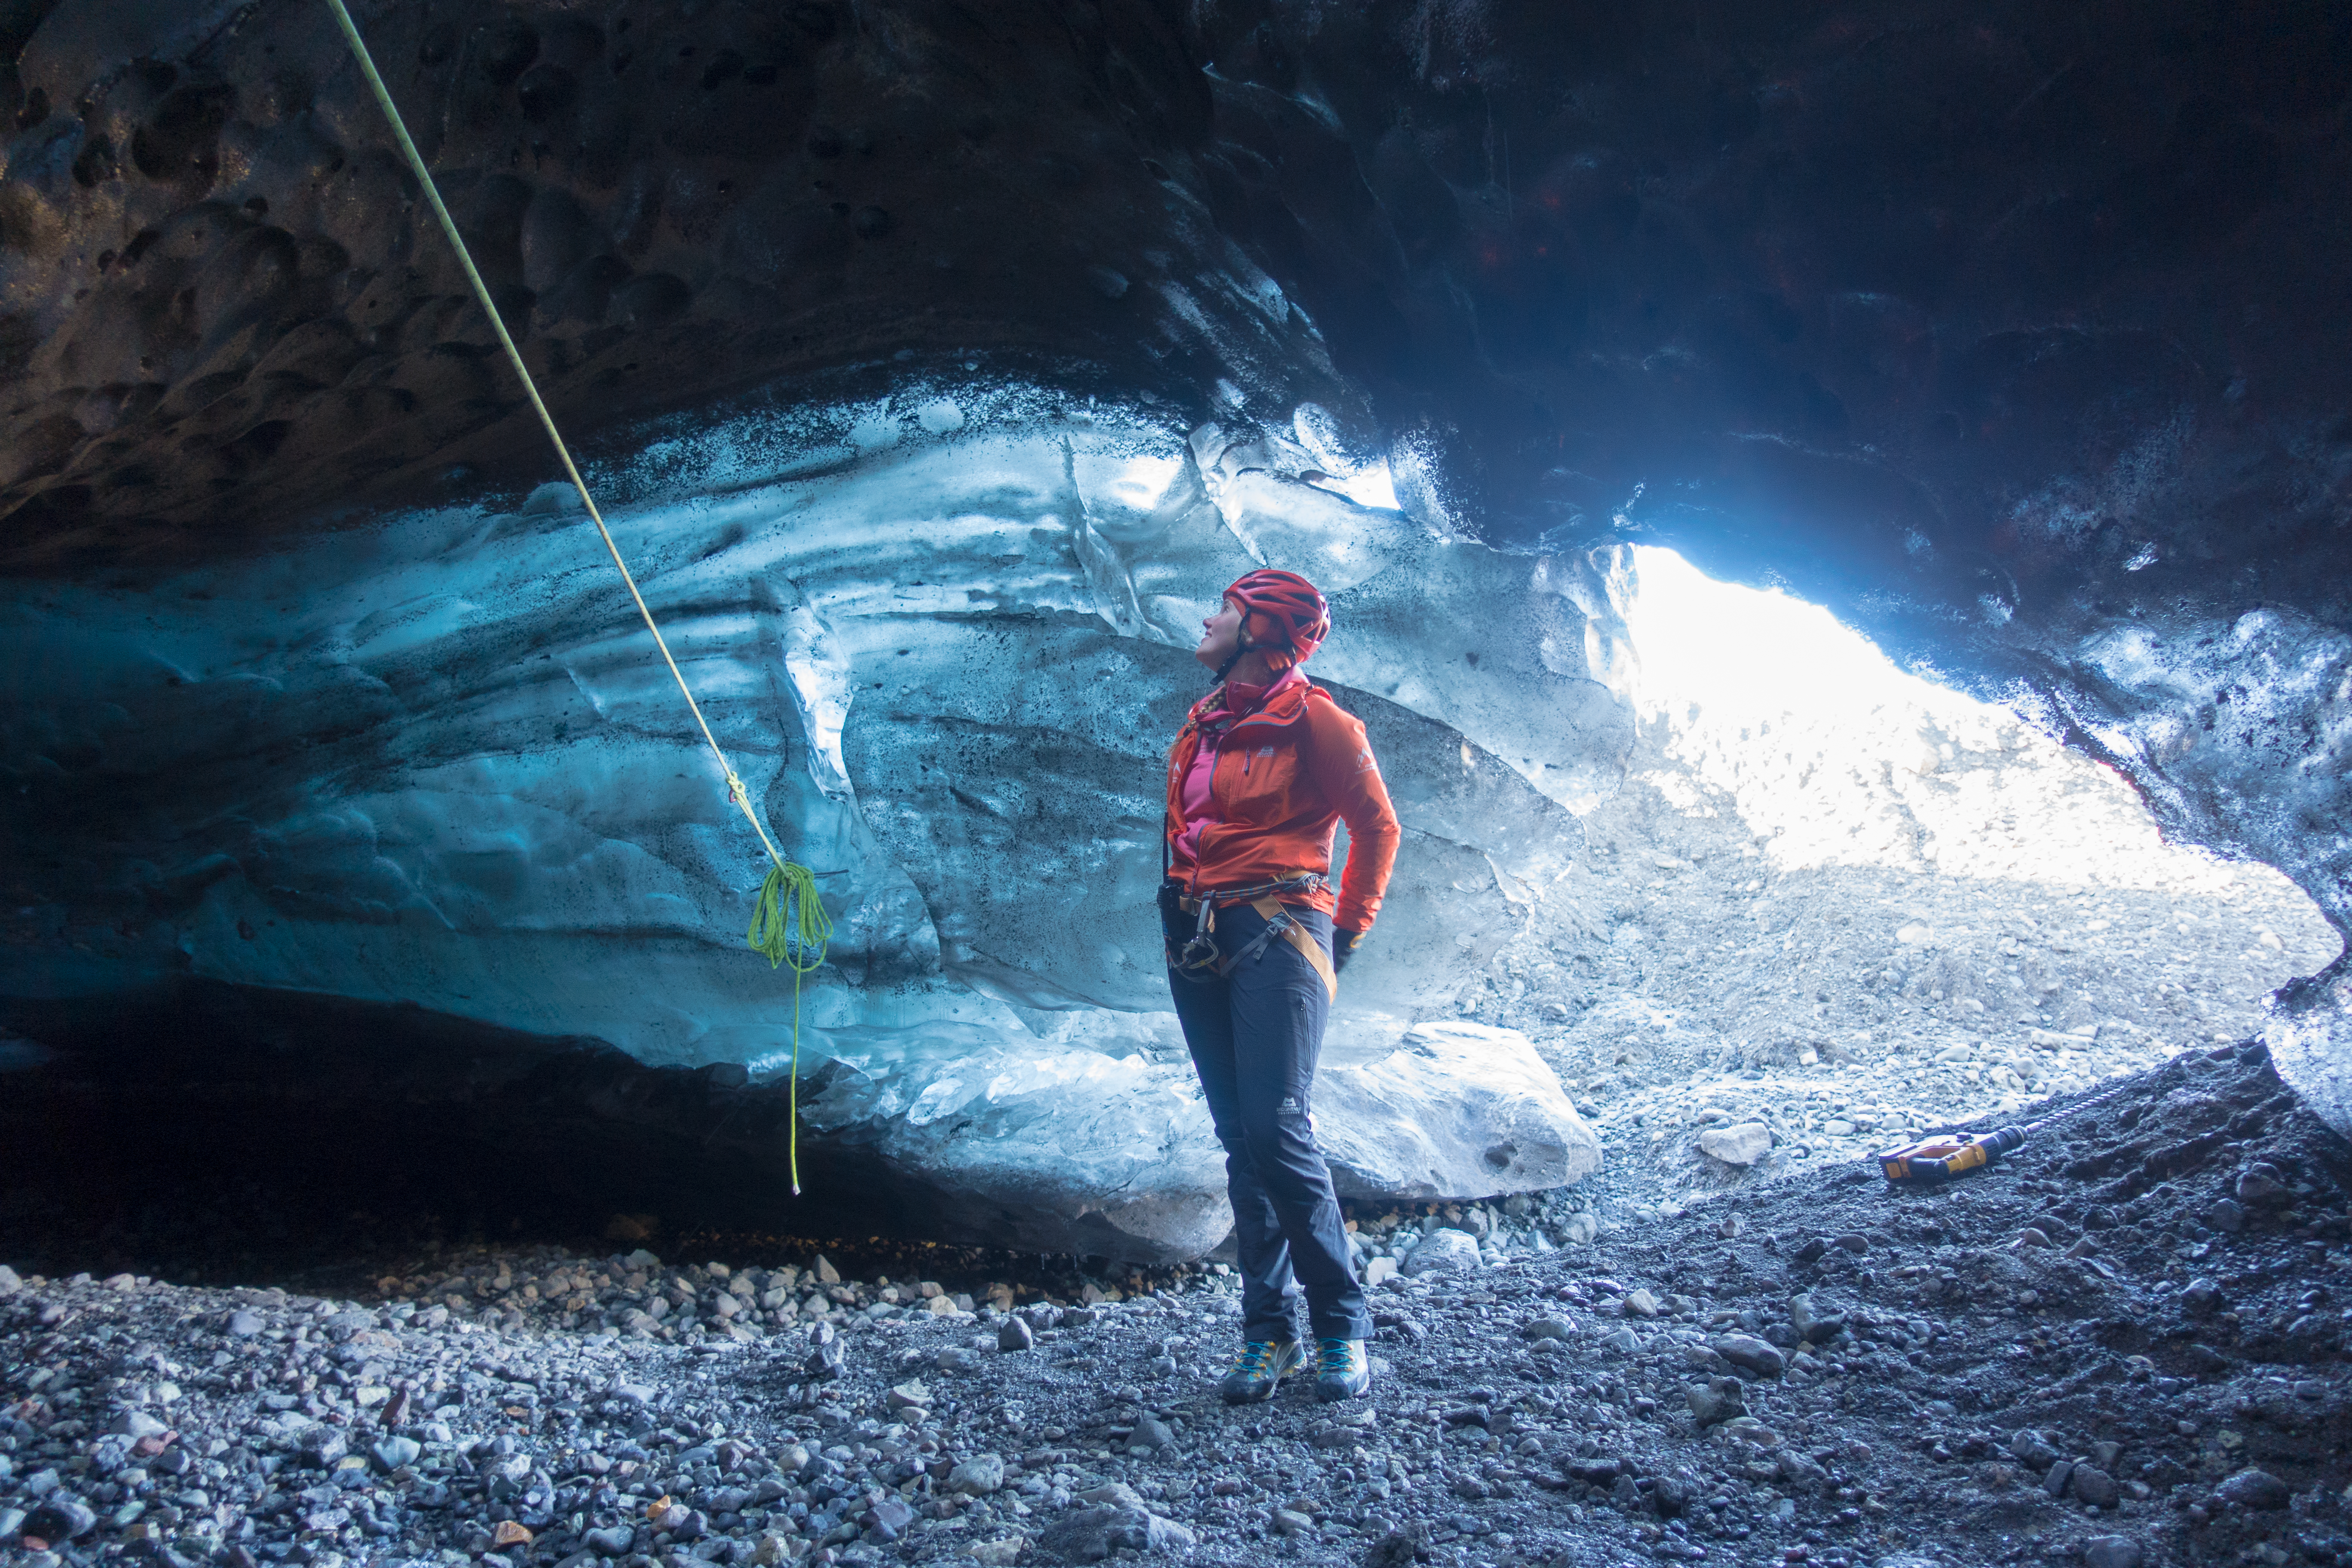 On an ice cave tour from Skaftafell Nature Reserve, you'll see the spectacular blue ice of the cave's walls